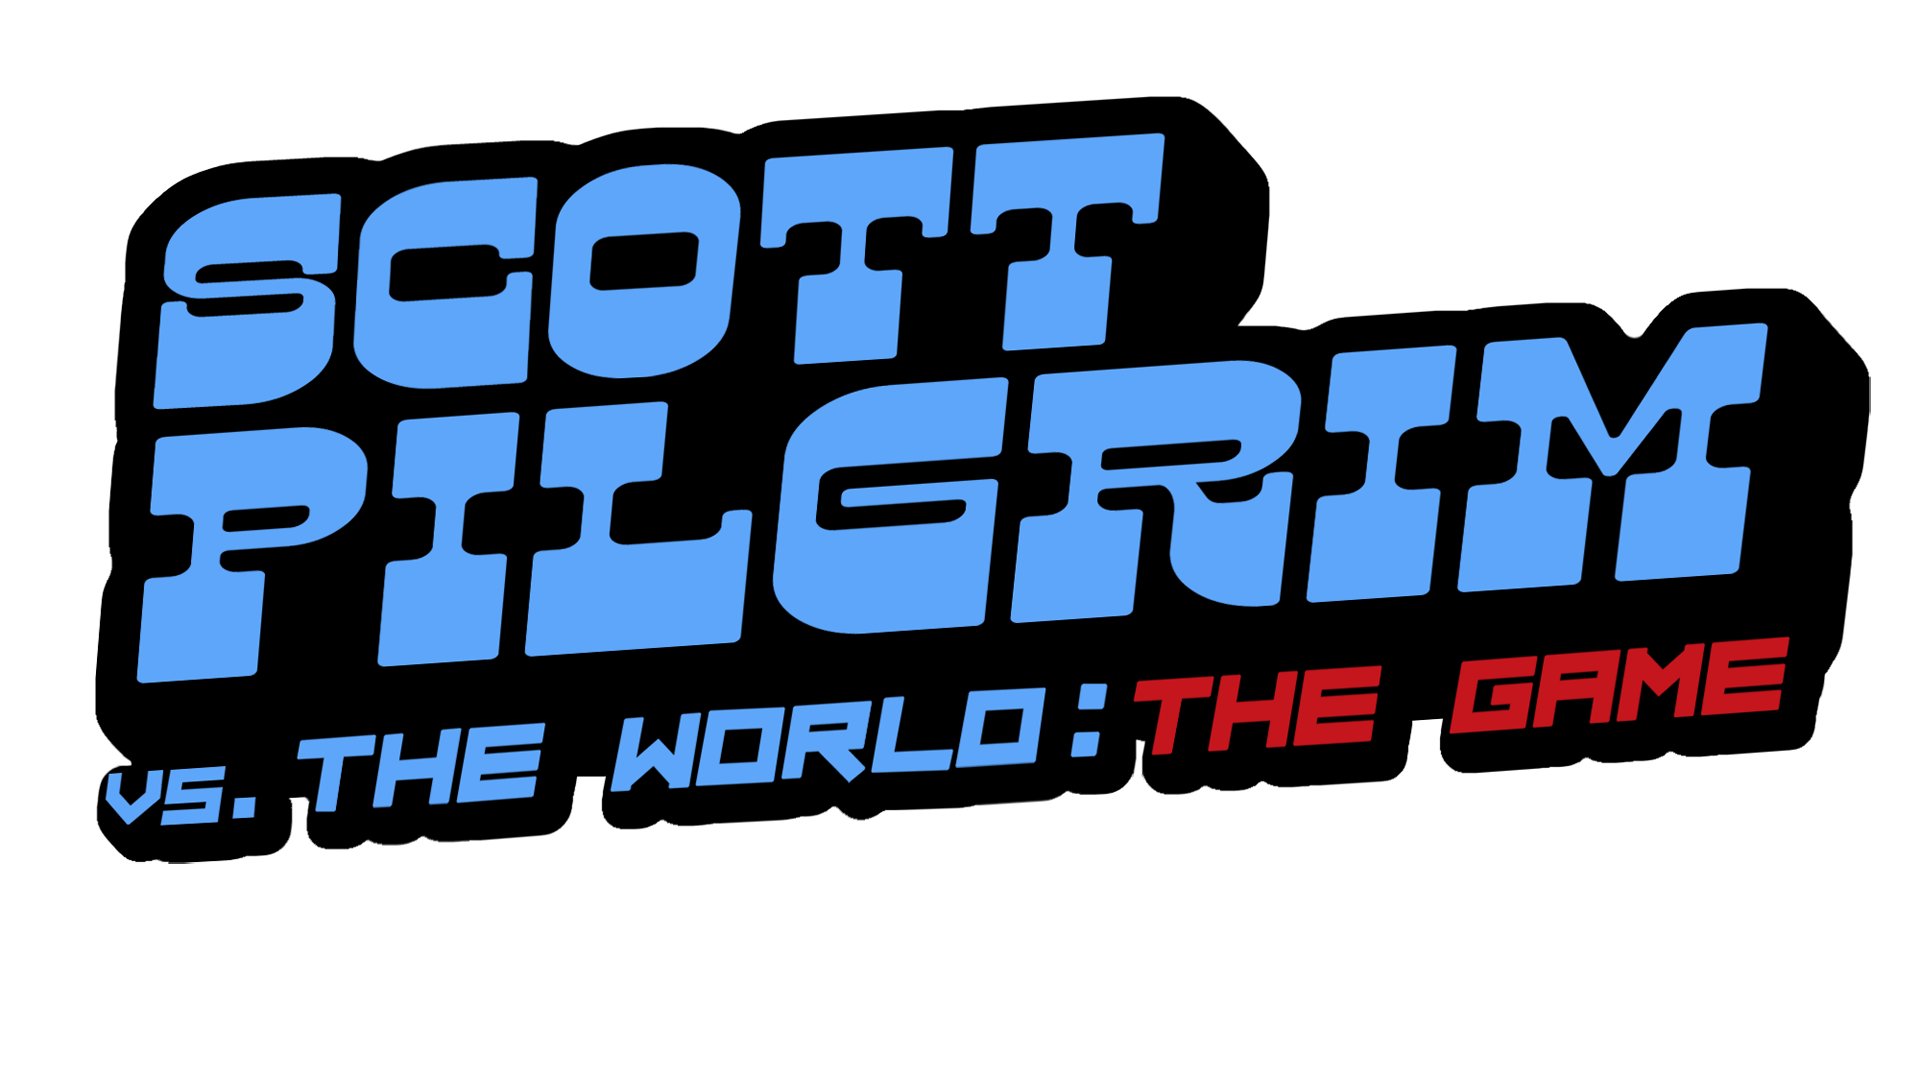 Scott Pilgrim vs. The World: The Game Logo